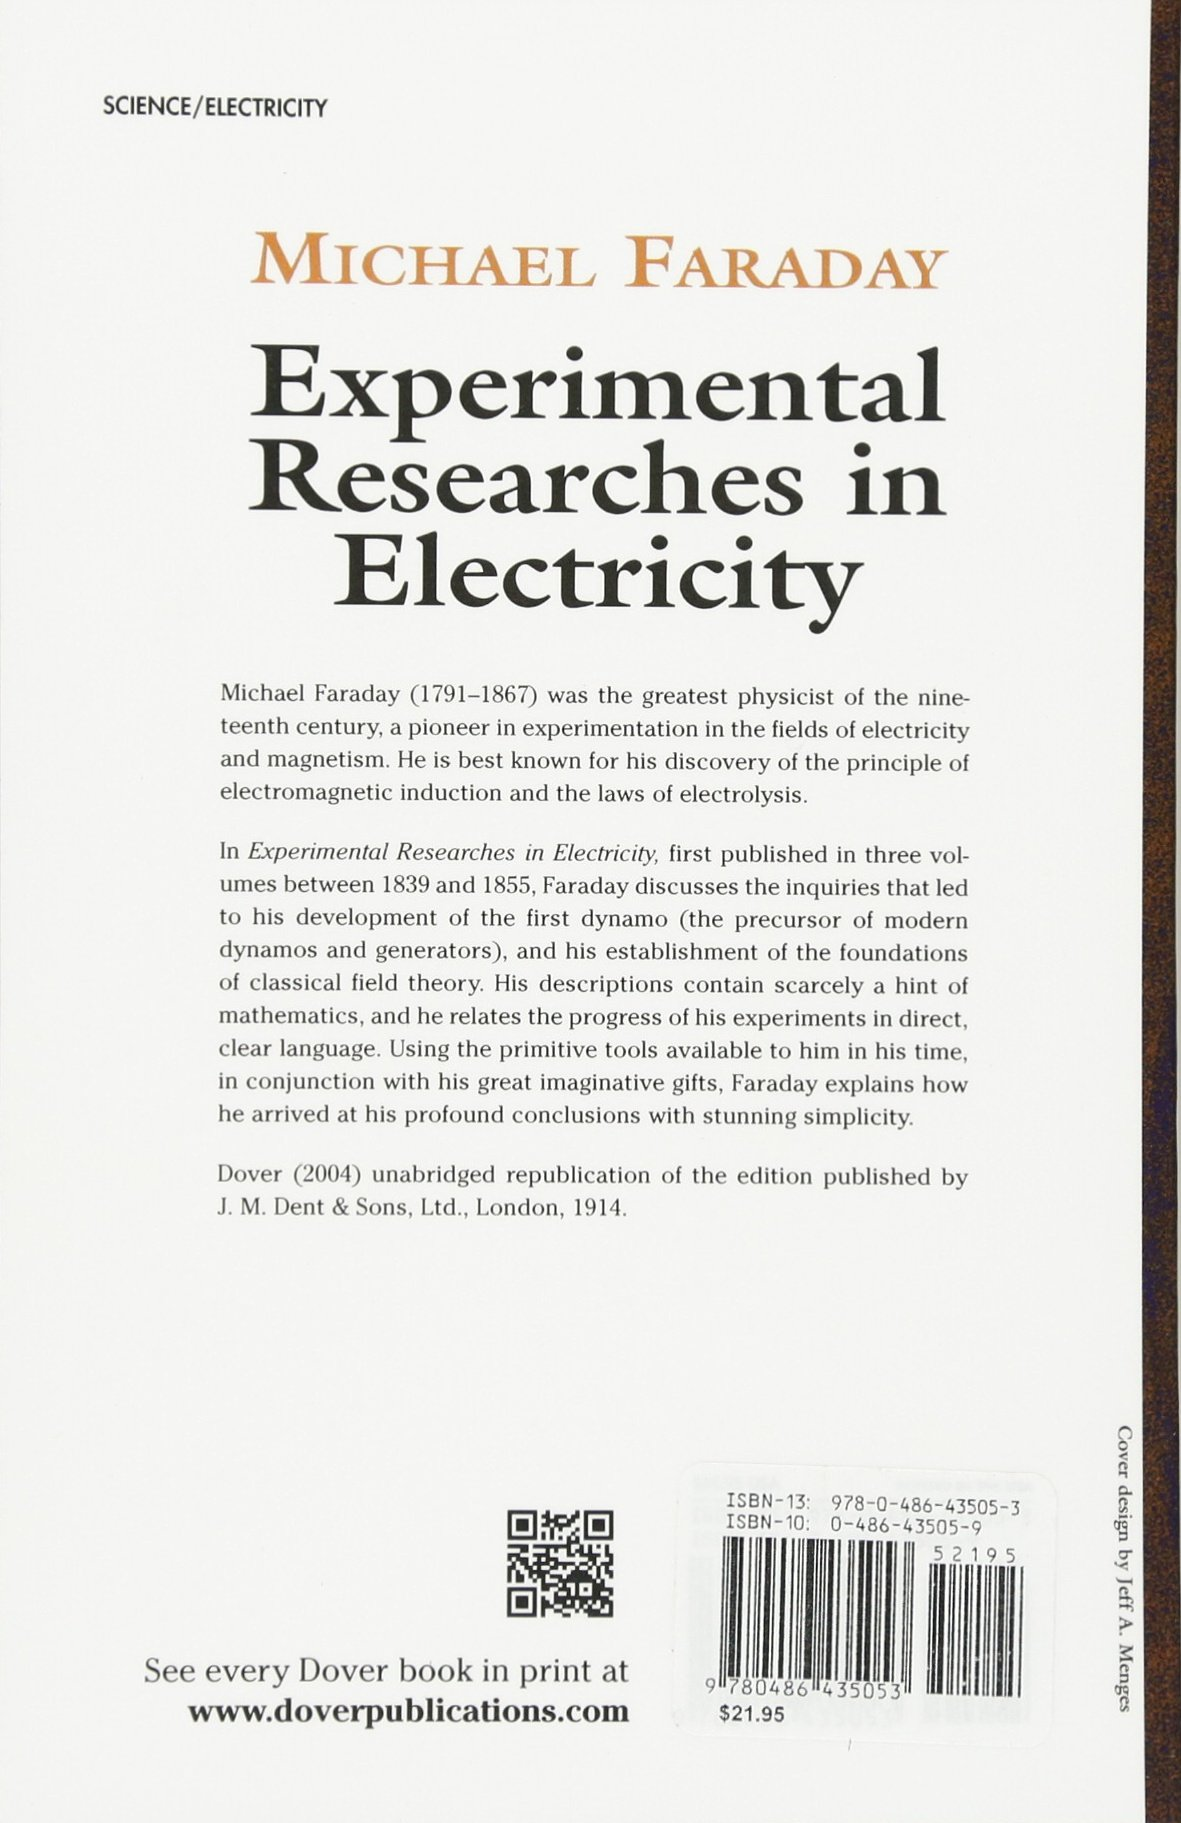 Faraday experiments. Electromagnetic induction. Michael Faraday 18